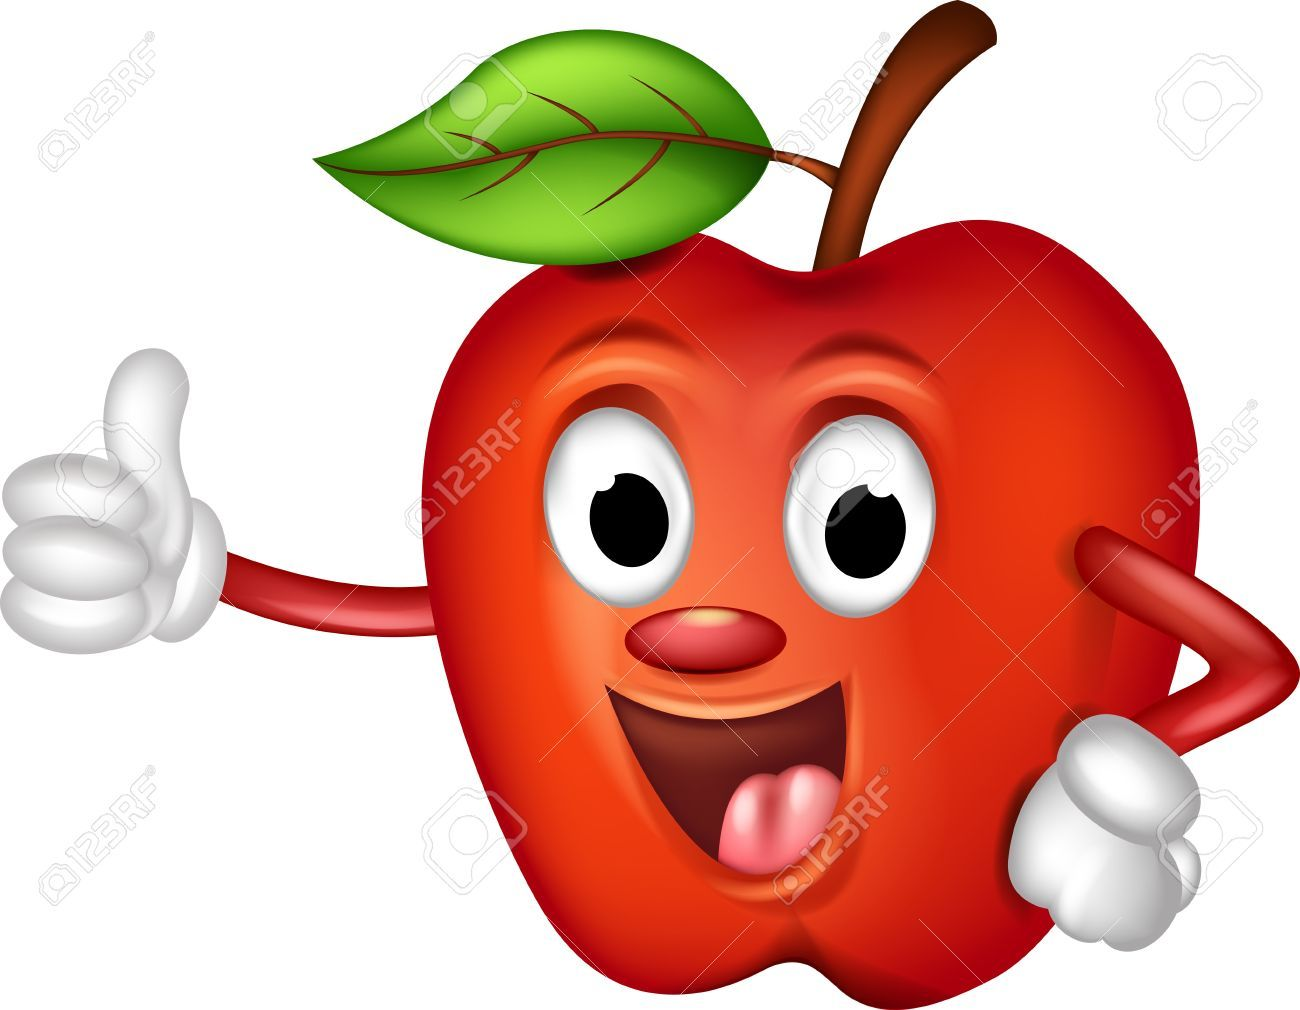 Funny fruit clipart graphic library stock Funny fruit clipart 5 » Clipart Portal graphic library stock